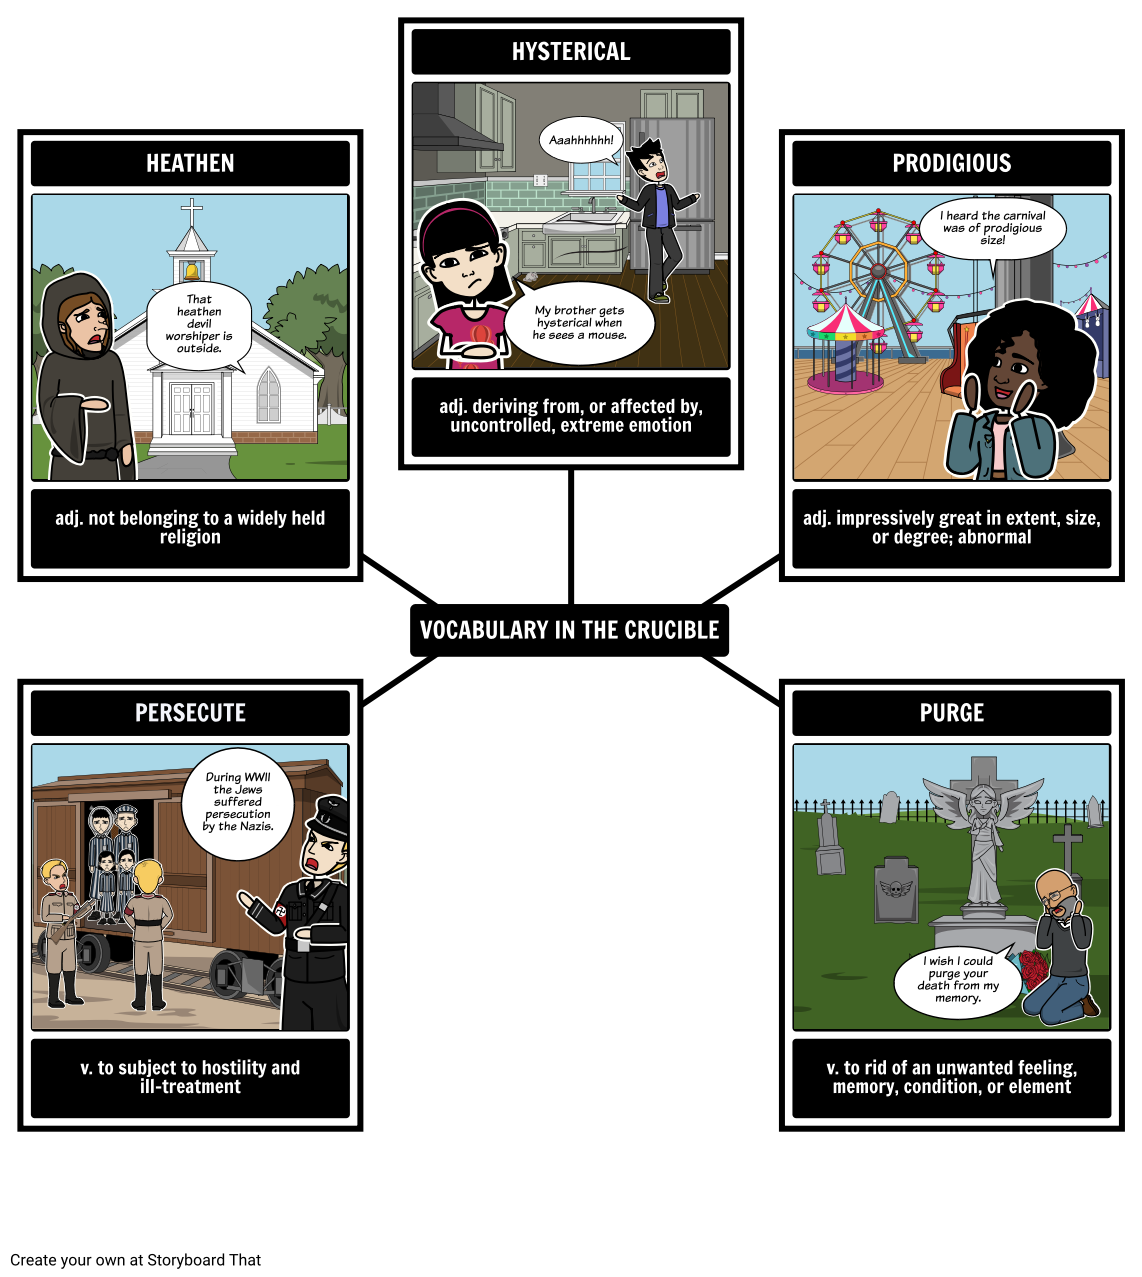 the crucible summary allegory the crucible characters the crucible vocabulary